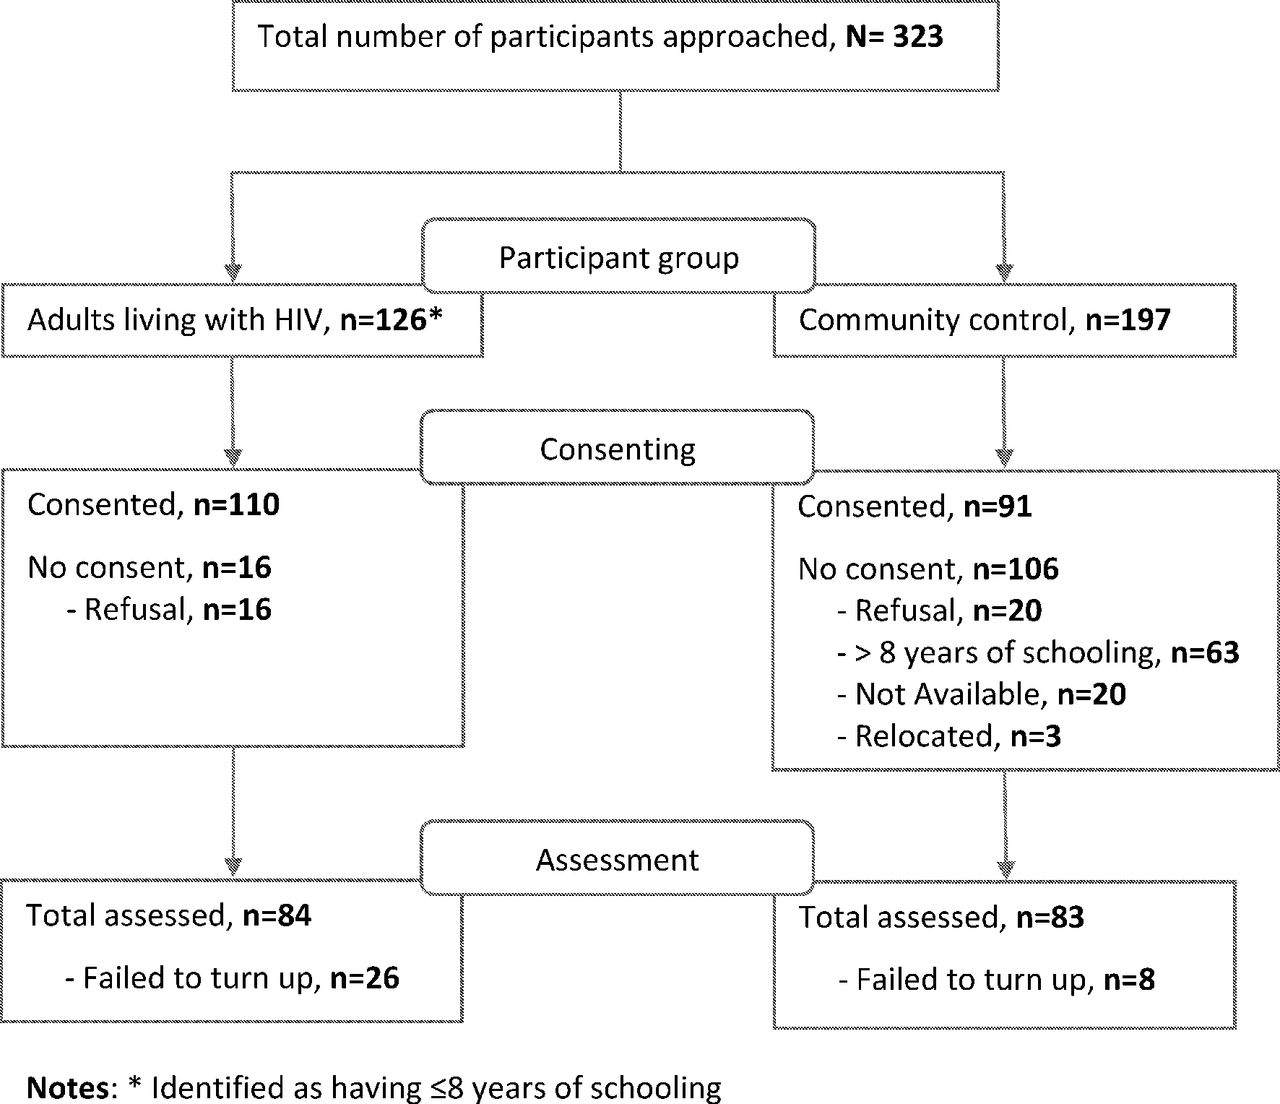 Neurocognitive And Mental Health Outcomes And Association With